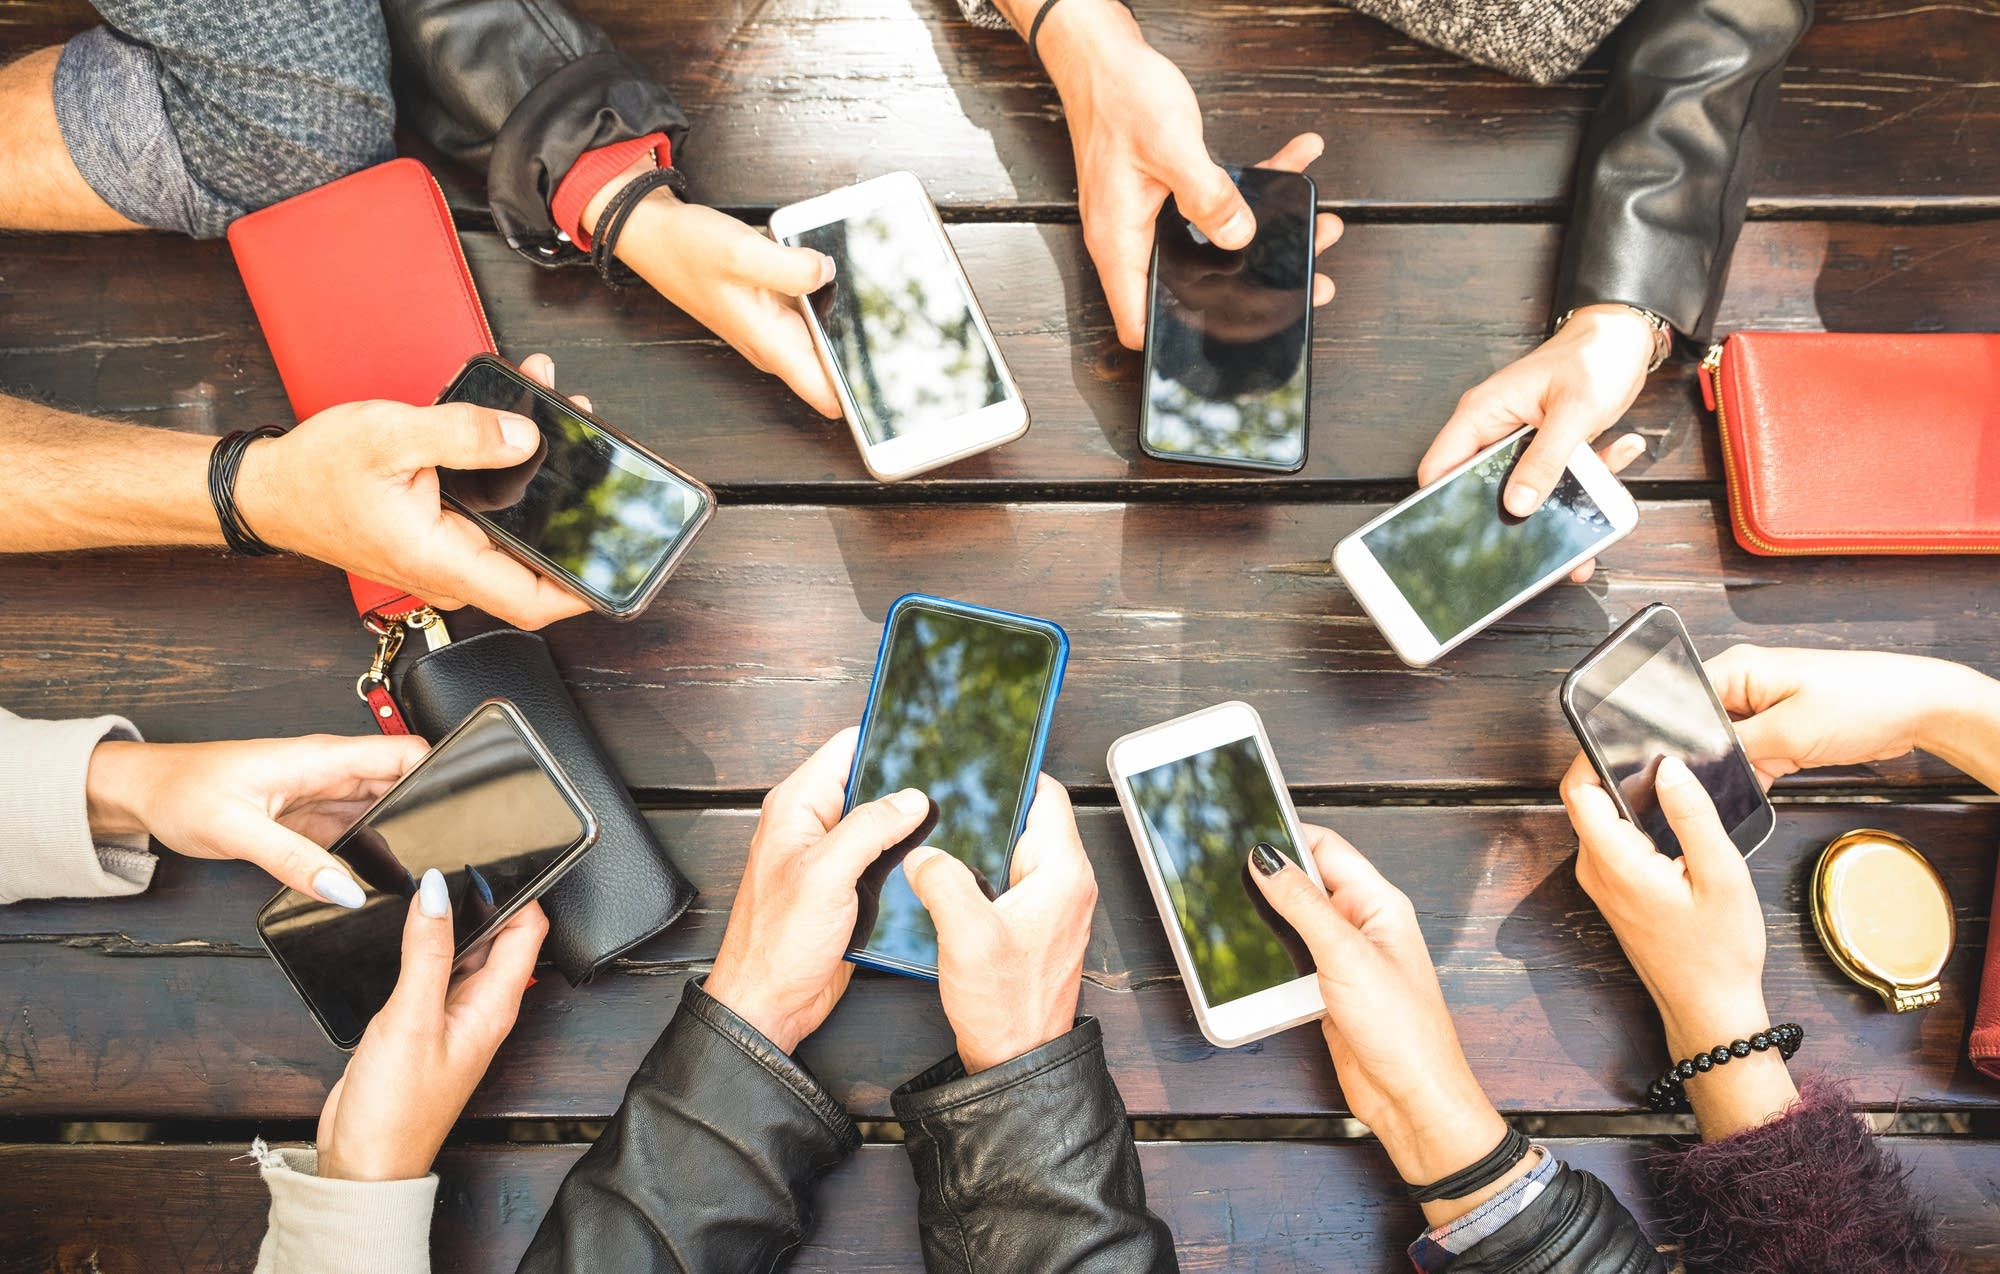 Image result for image of people using phone